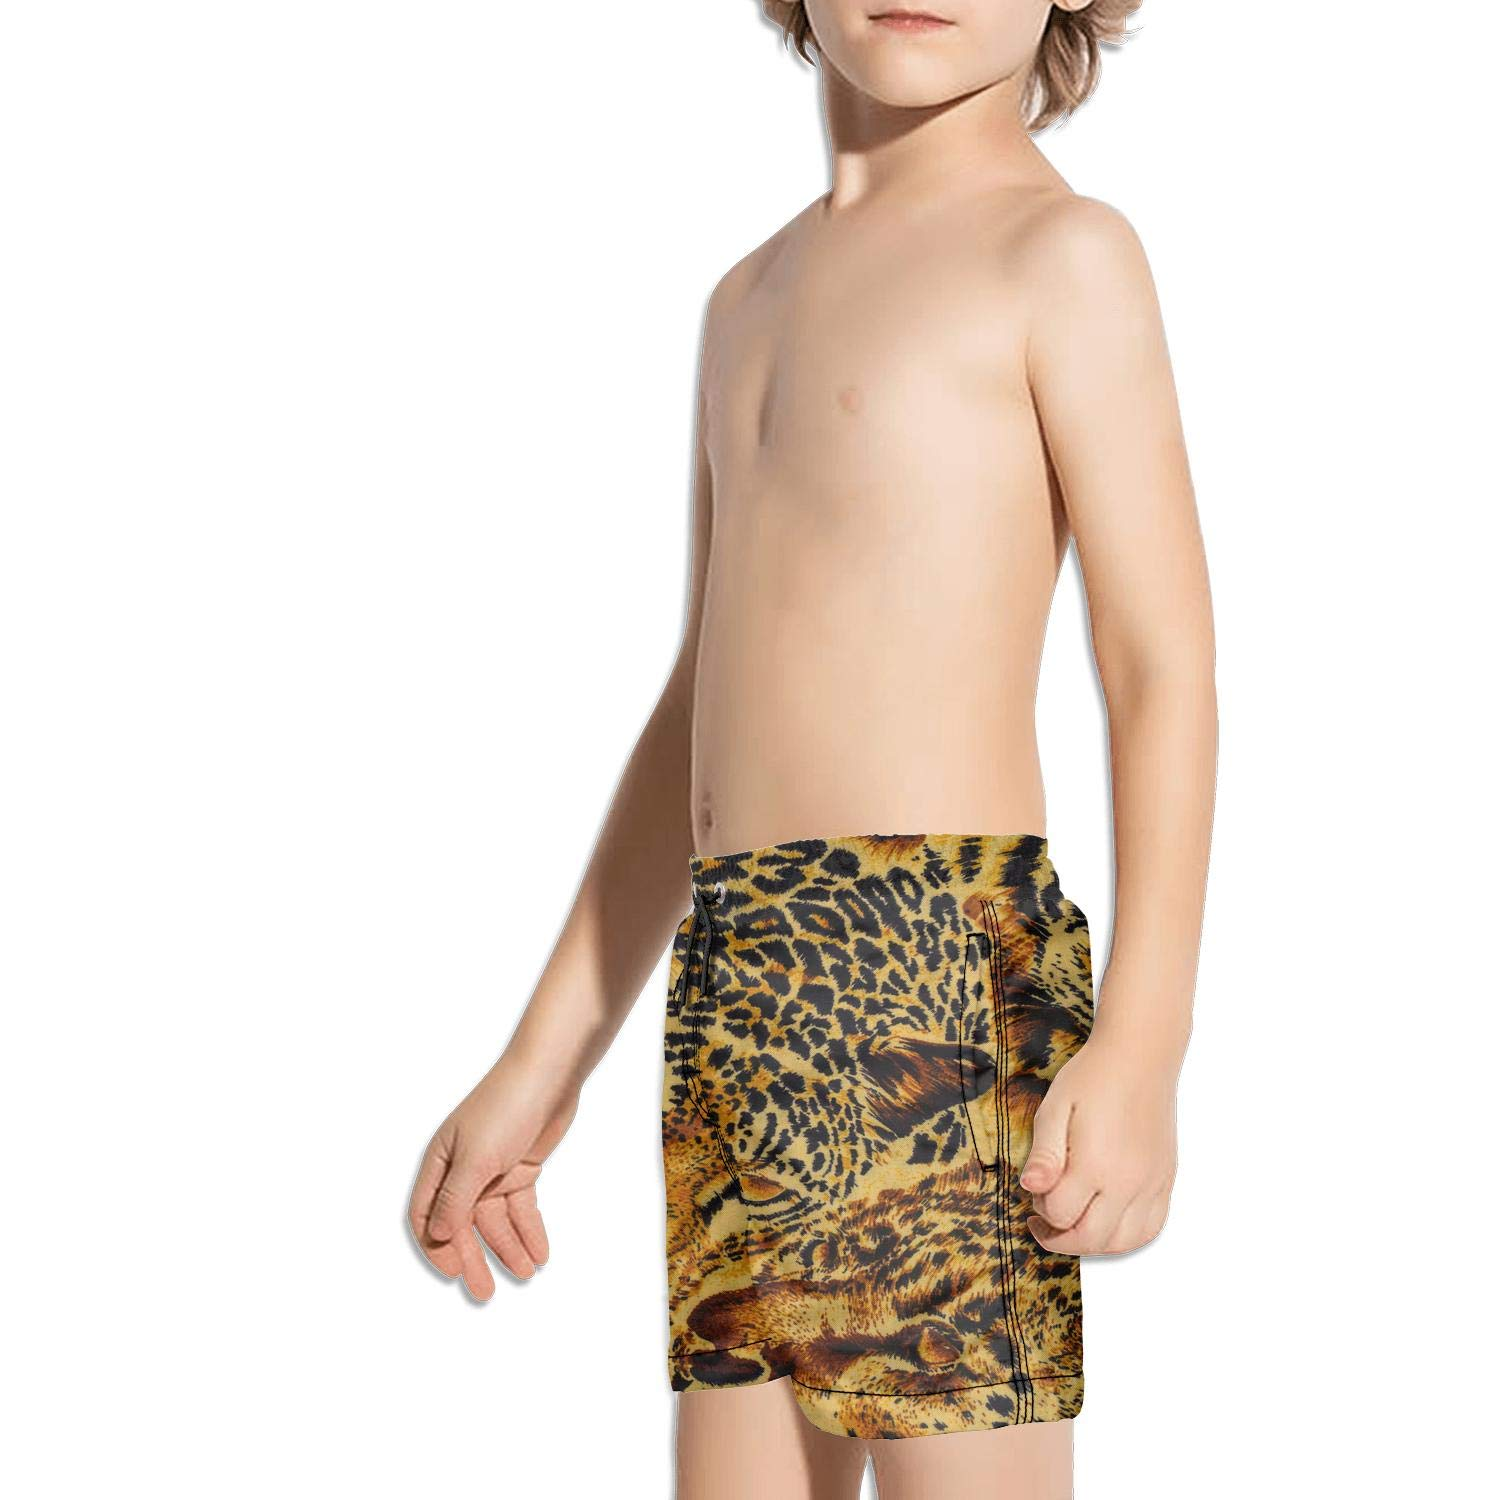 Animal Print Leopard Texture Camouflage String Core Side Split Swimming Trunks Shorts